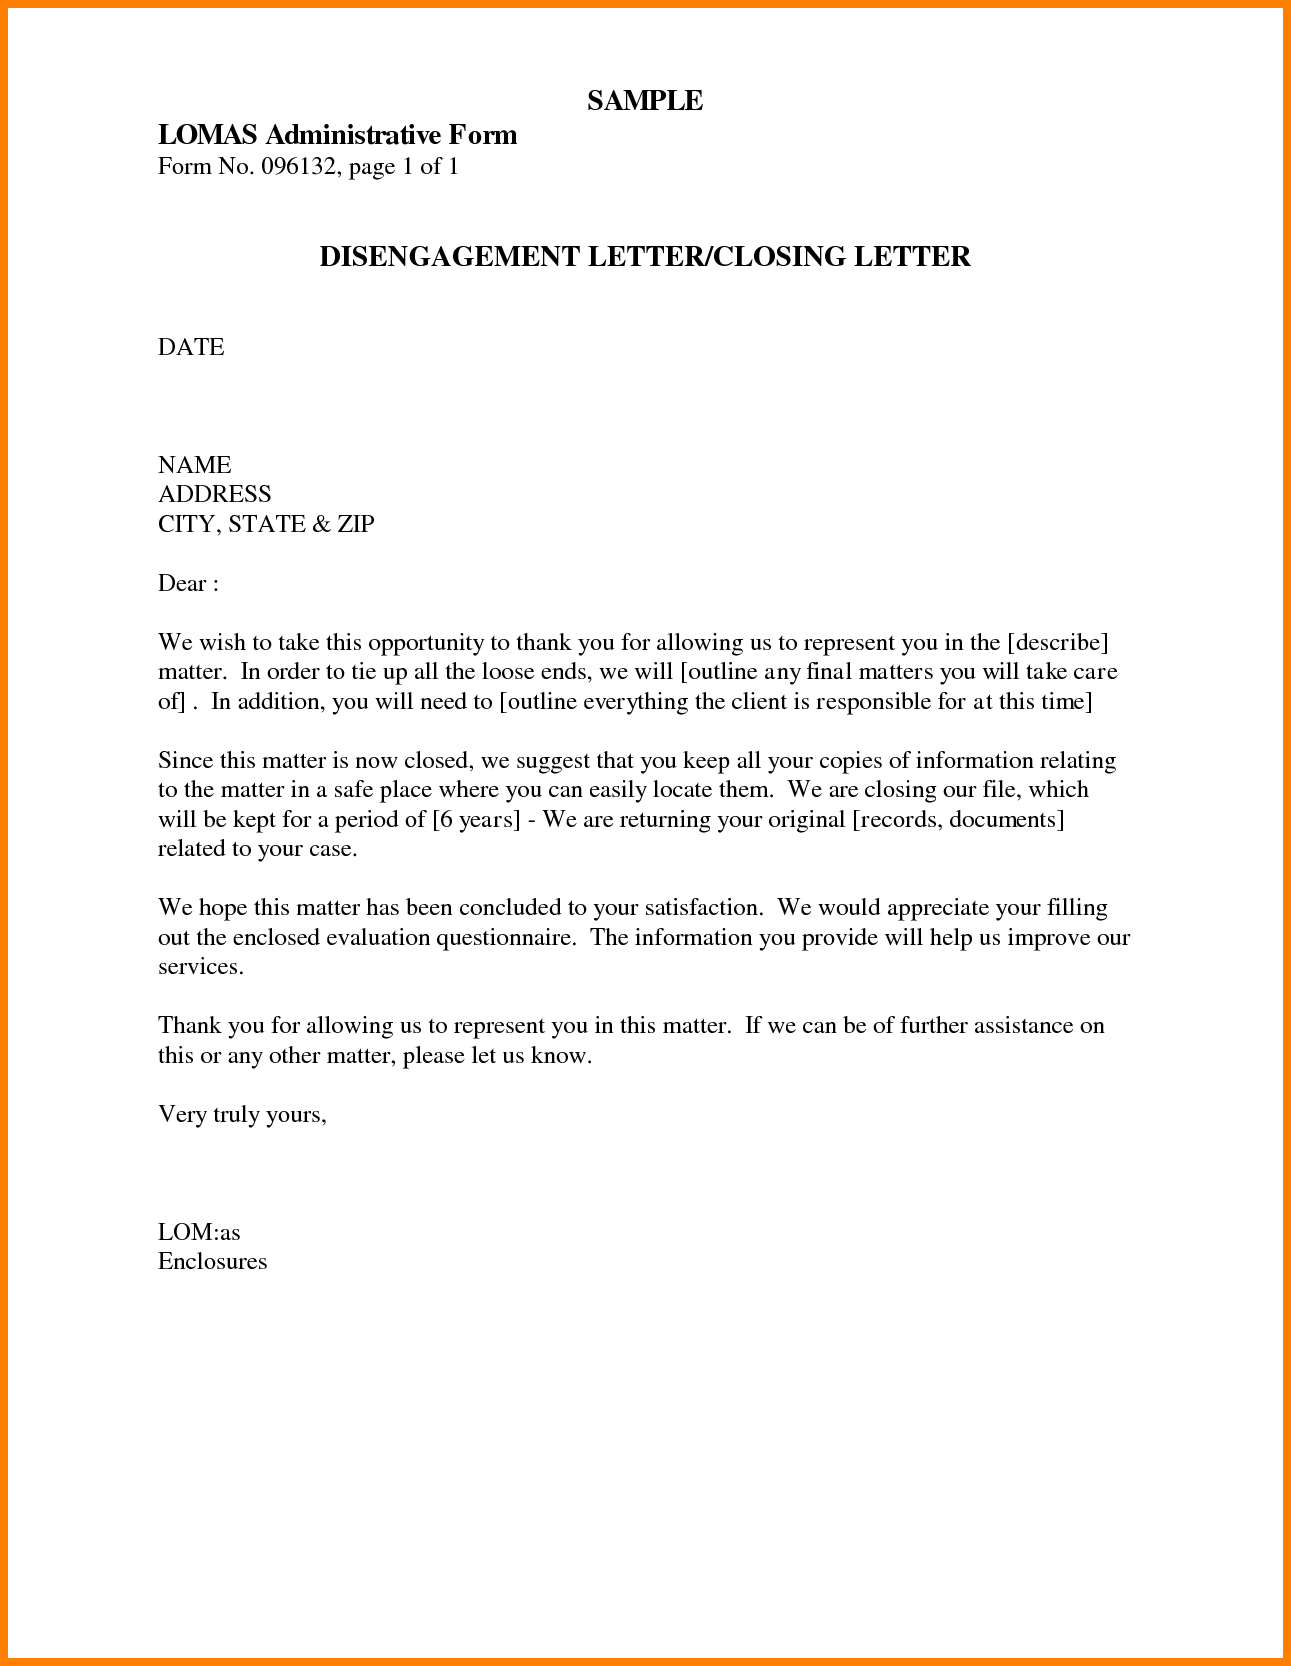 Listing of Business-Letter Closings